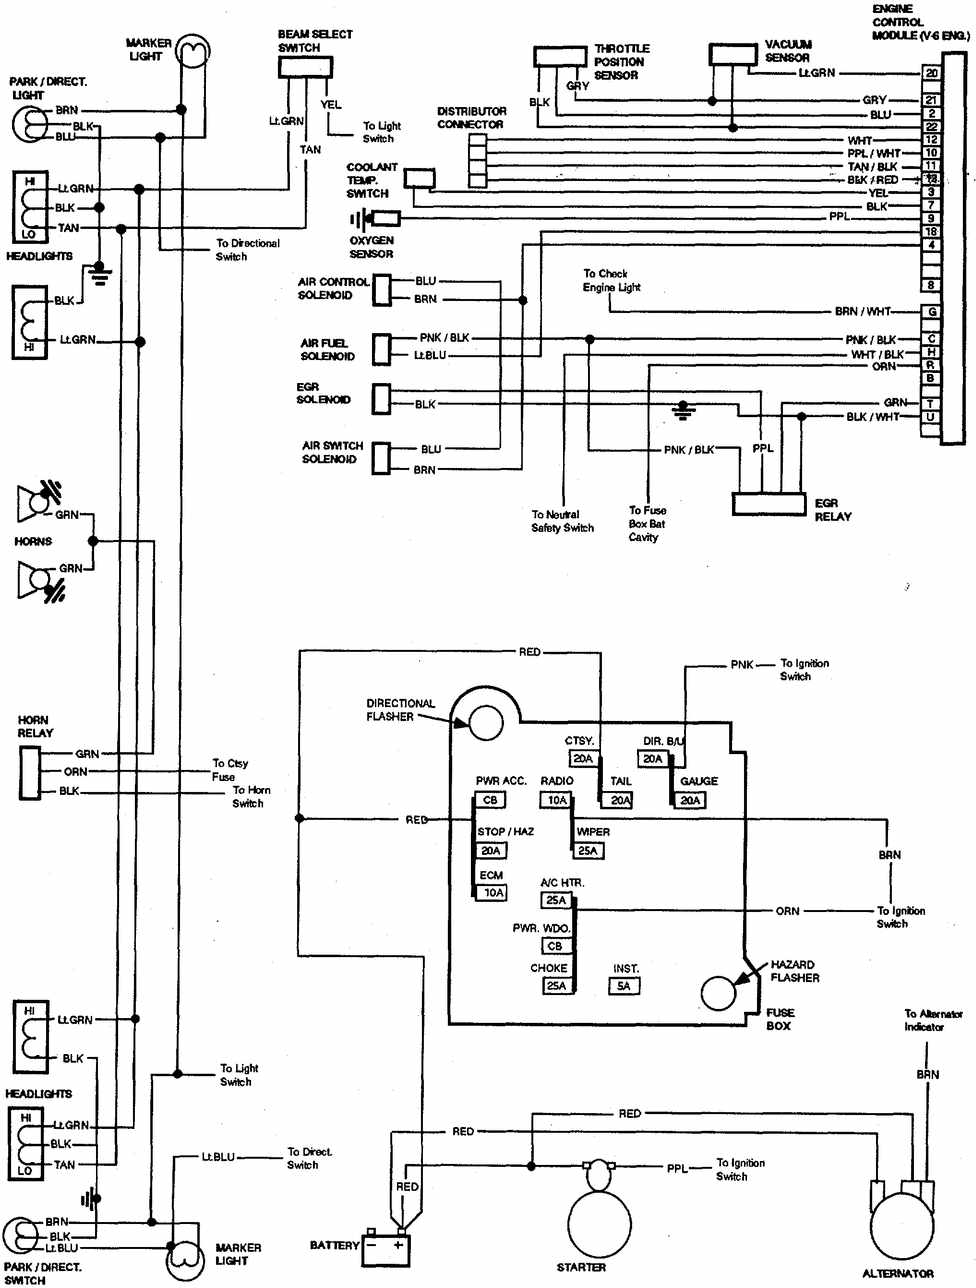 83 chevy c10 wiring diagram